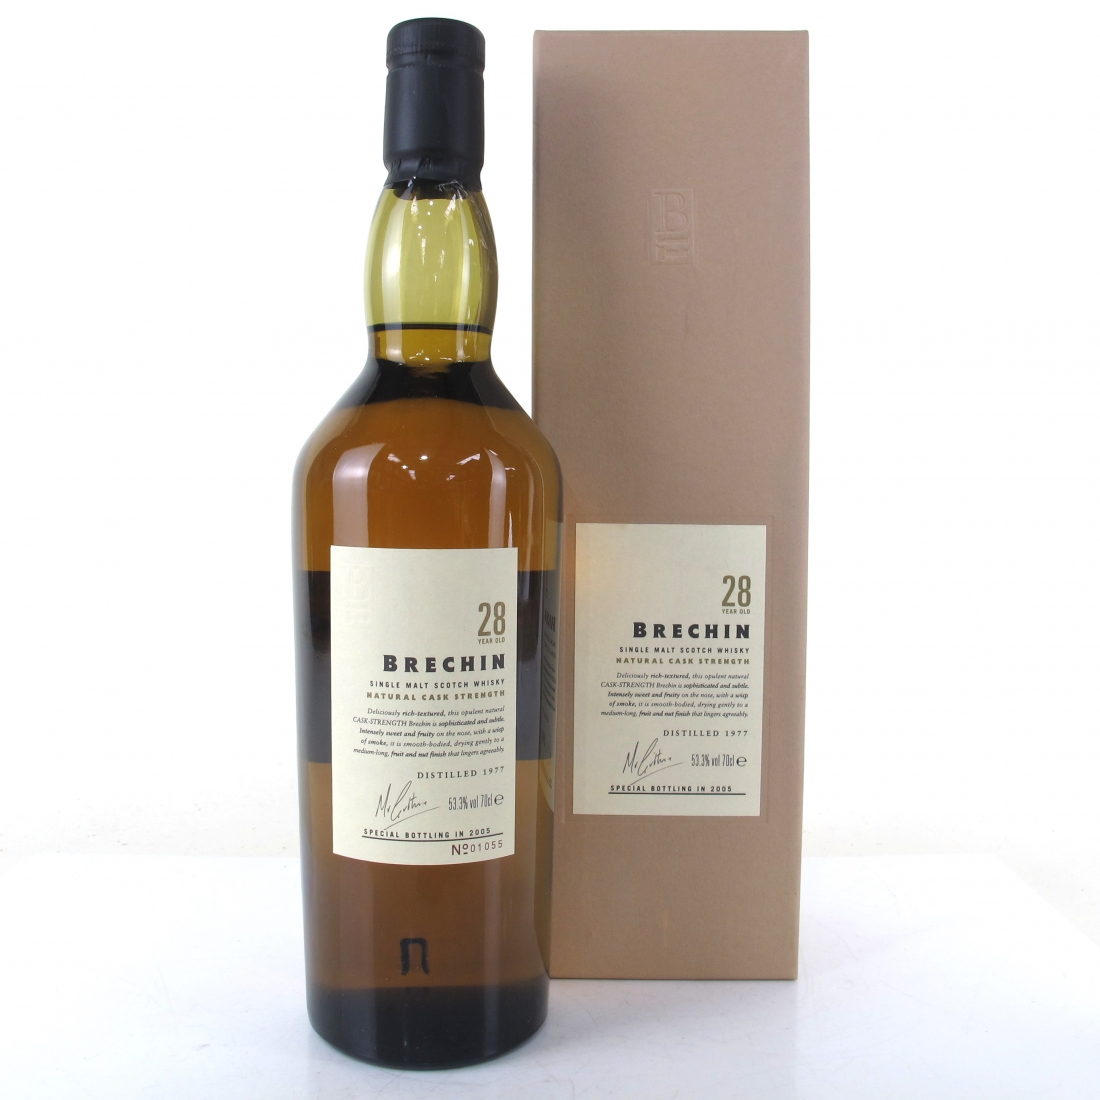 North Port / Brechin 1977 Cask Strength 28 Year Old